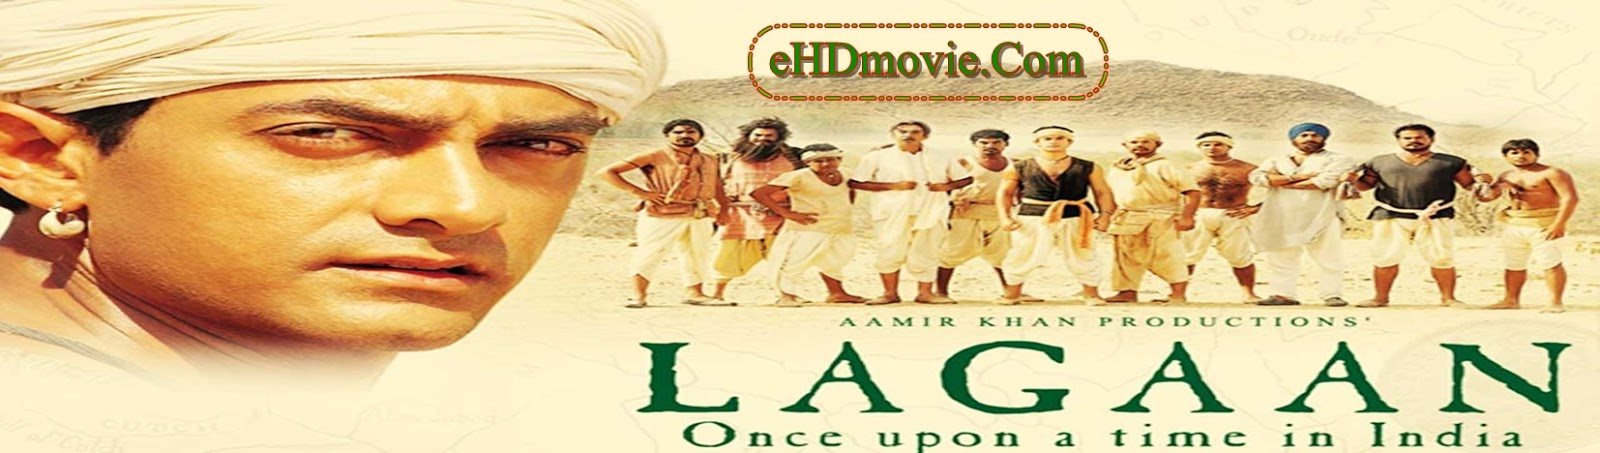 Lagaan: Once Upon a Time in India 2001 Full Movie Hindi 1080p - 720p - 480p ORG BRRip 450MB - 1GB - 2GB ESubs Free Download